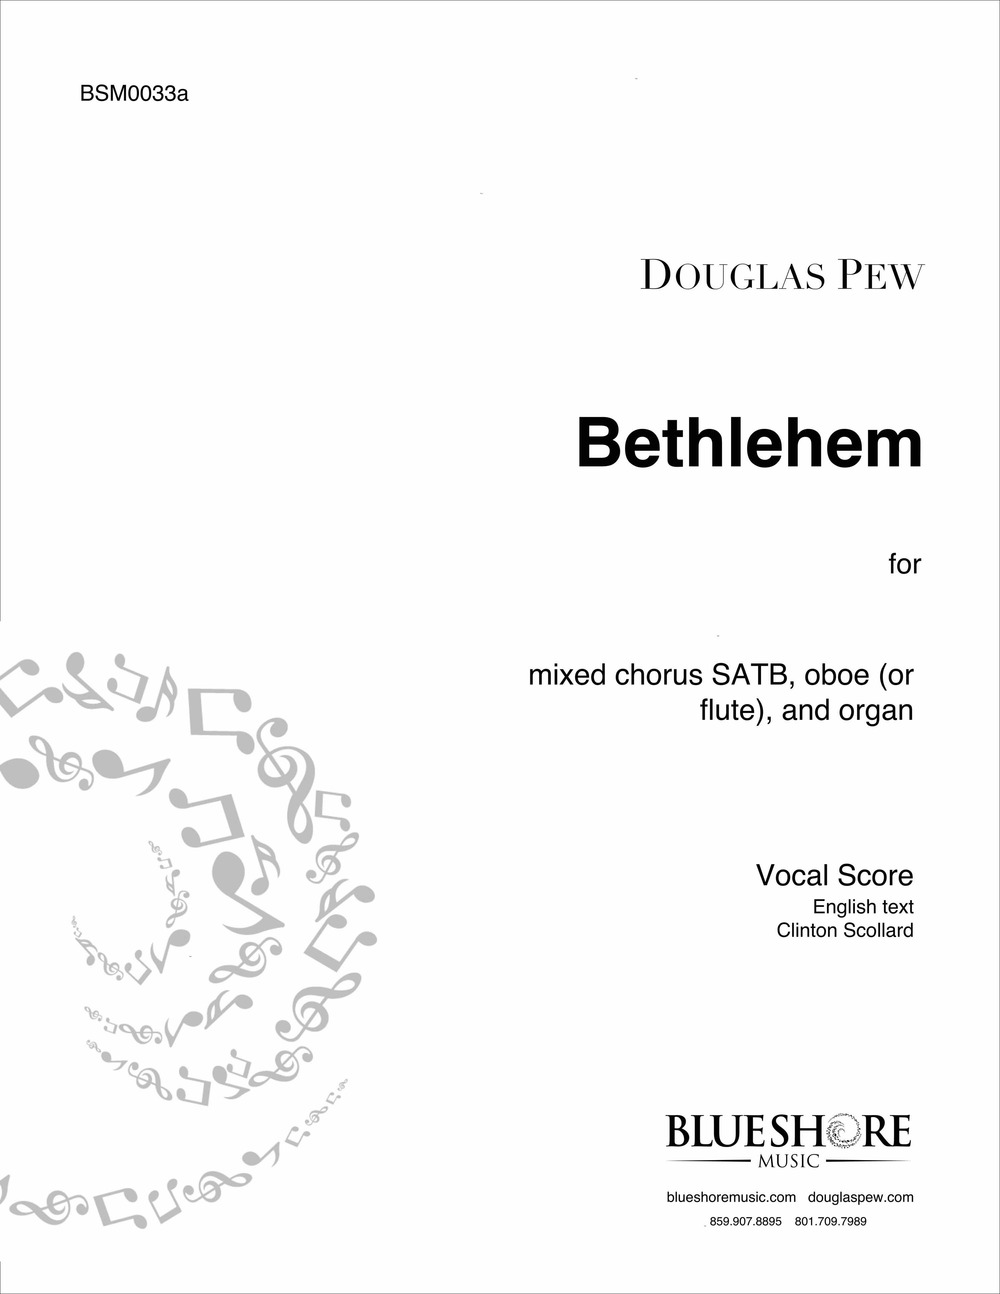 Bethlehem  -  SATB, Oboe (or Flute), and Organ